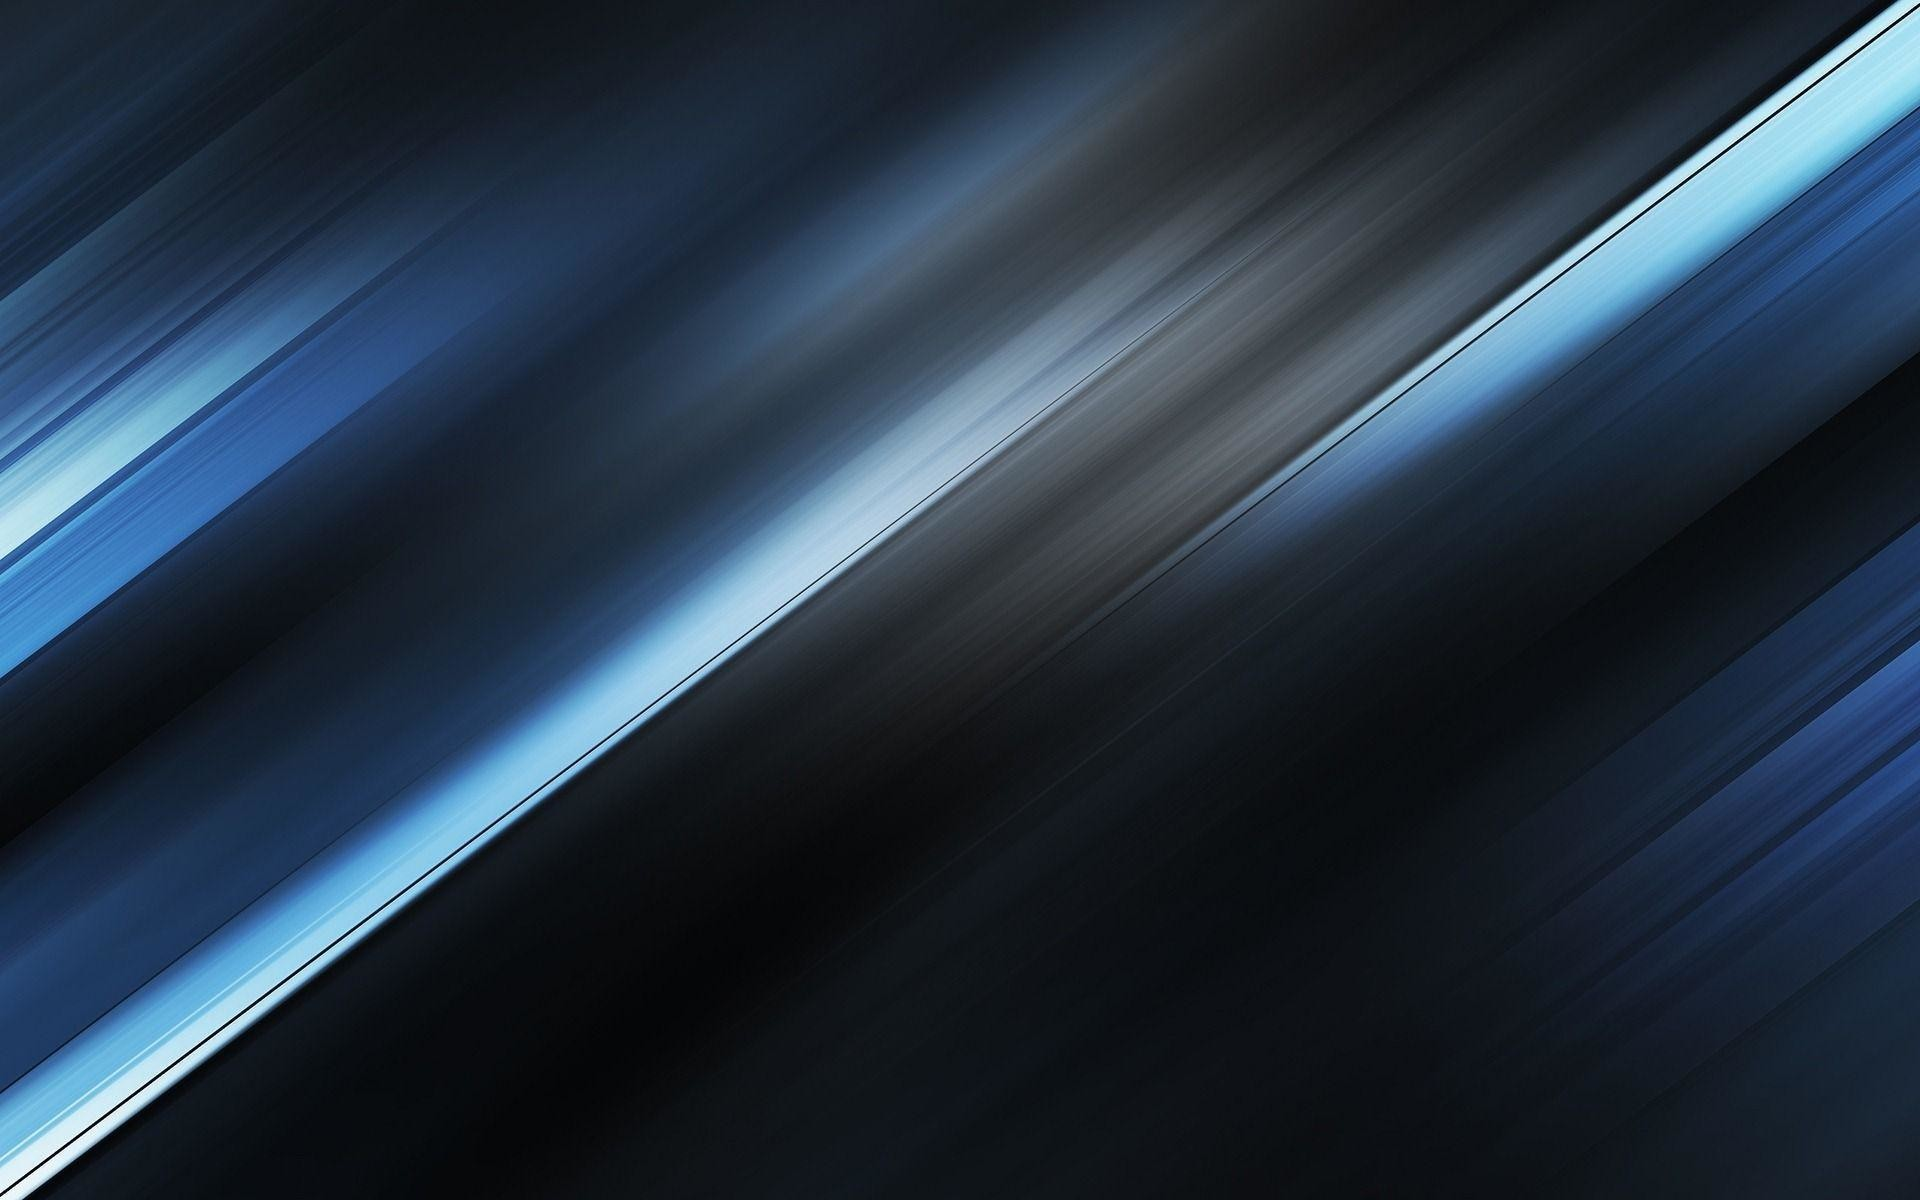 Black and Blue Abstract Wallpaper HD Amazing Wallpaperz 1920×1200